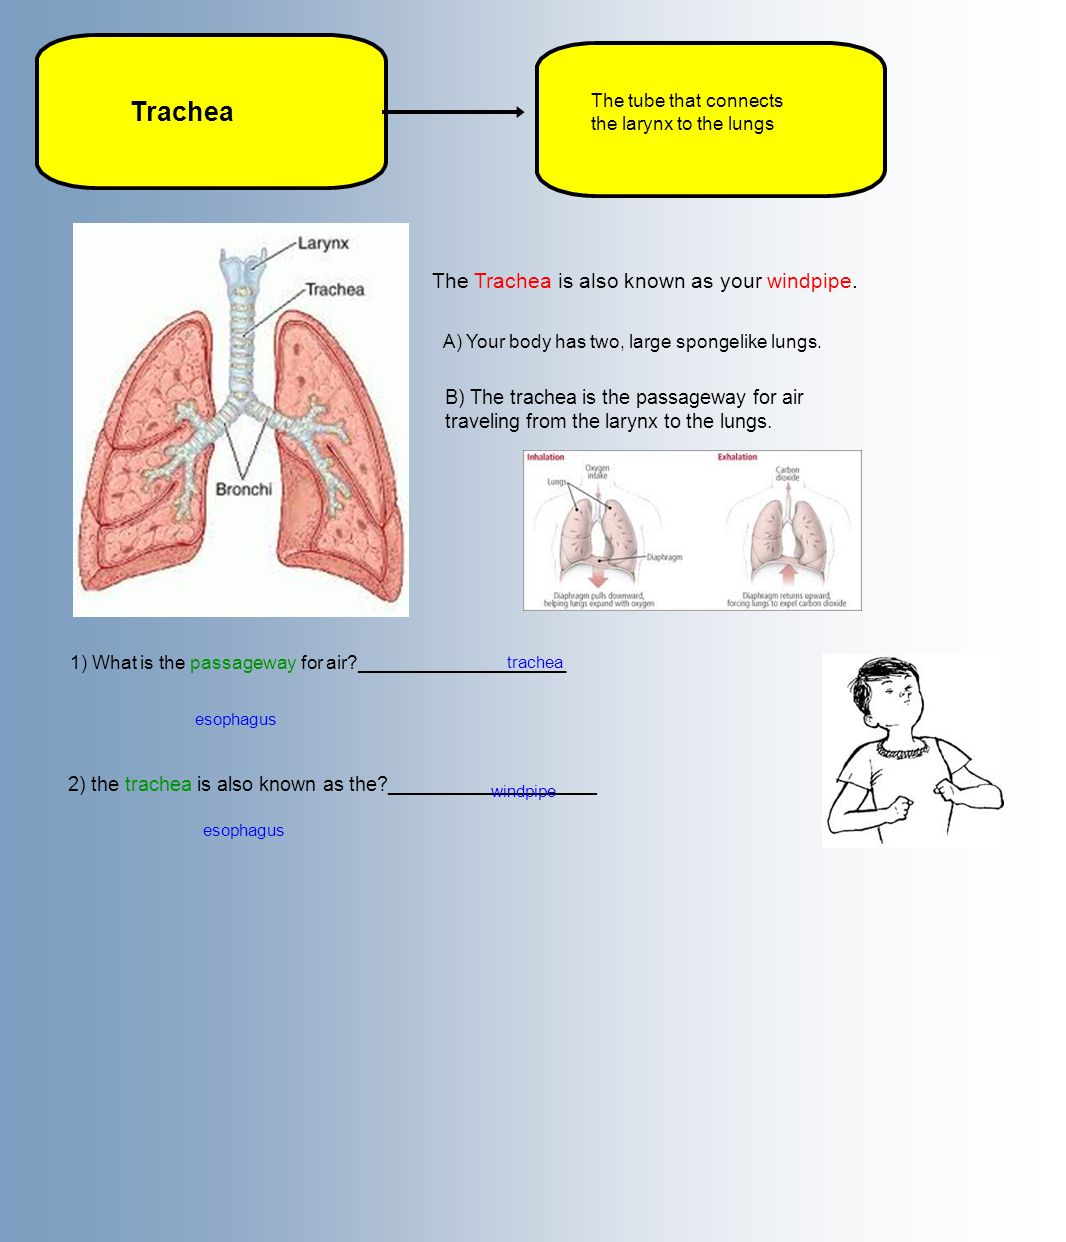 Trachea The Trachea is also known as your windpipe.